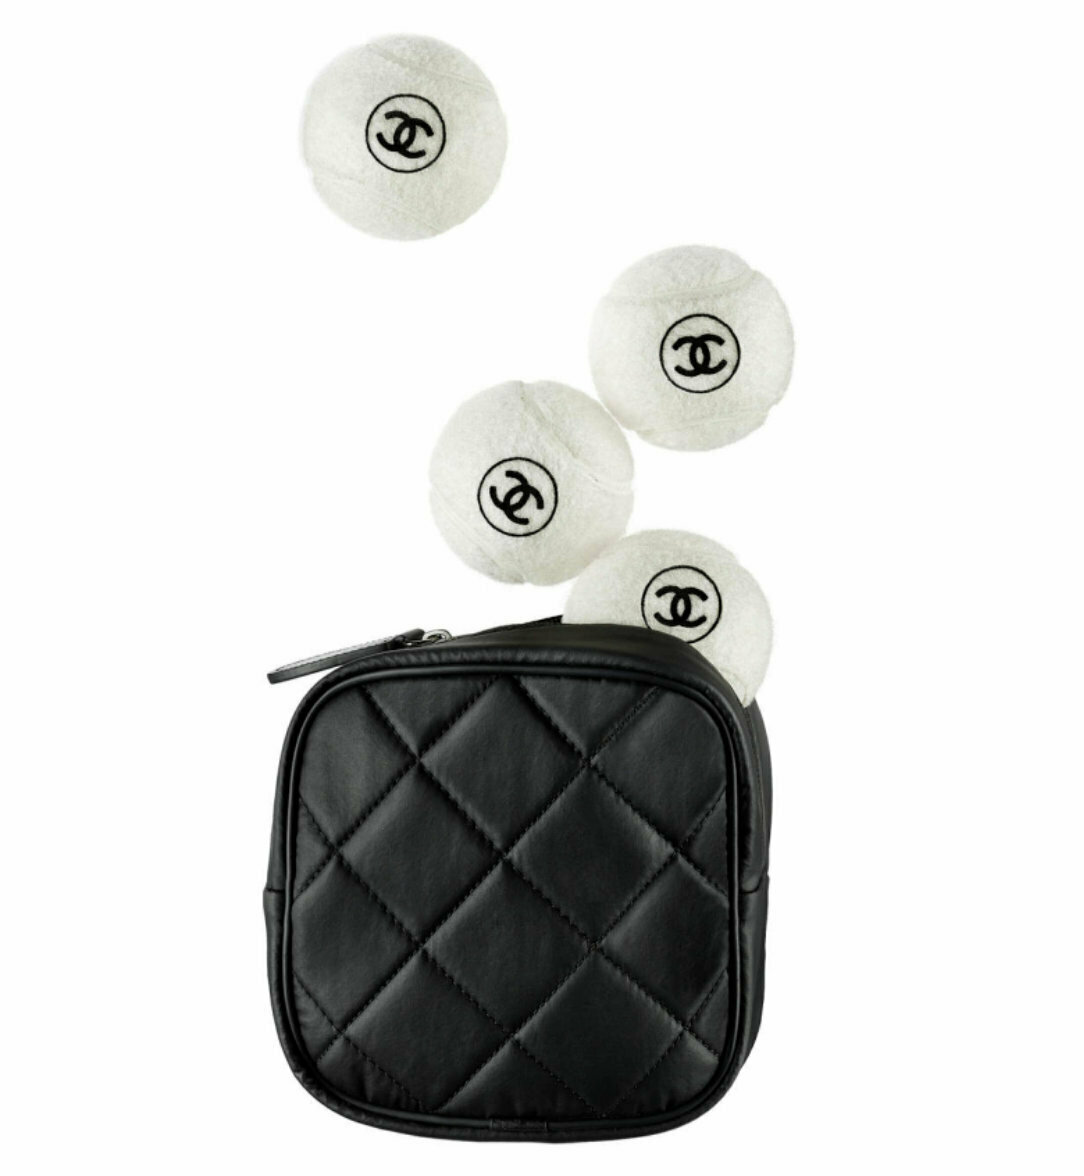 CHANEL 4 PC TENNIS BALL WITH MATELASSE QUILTED CARRYING CASE